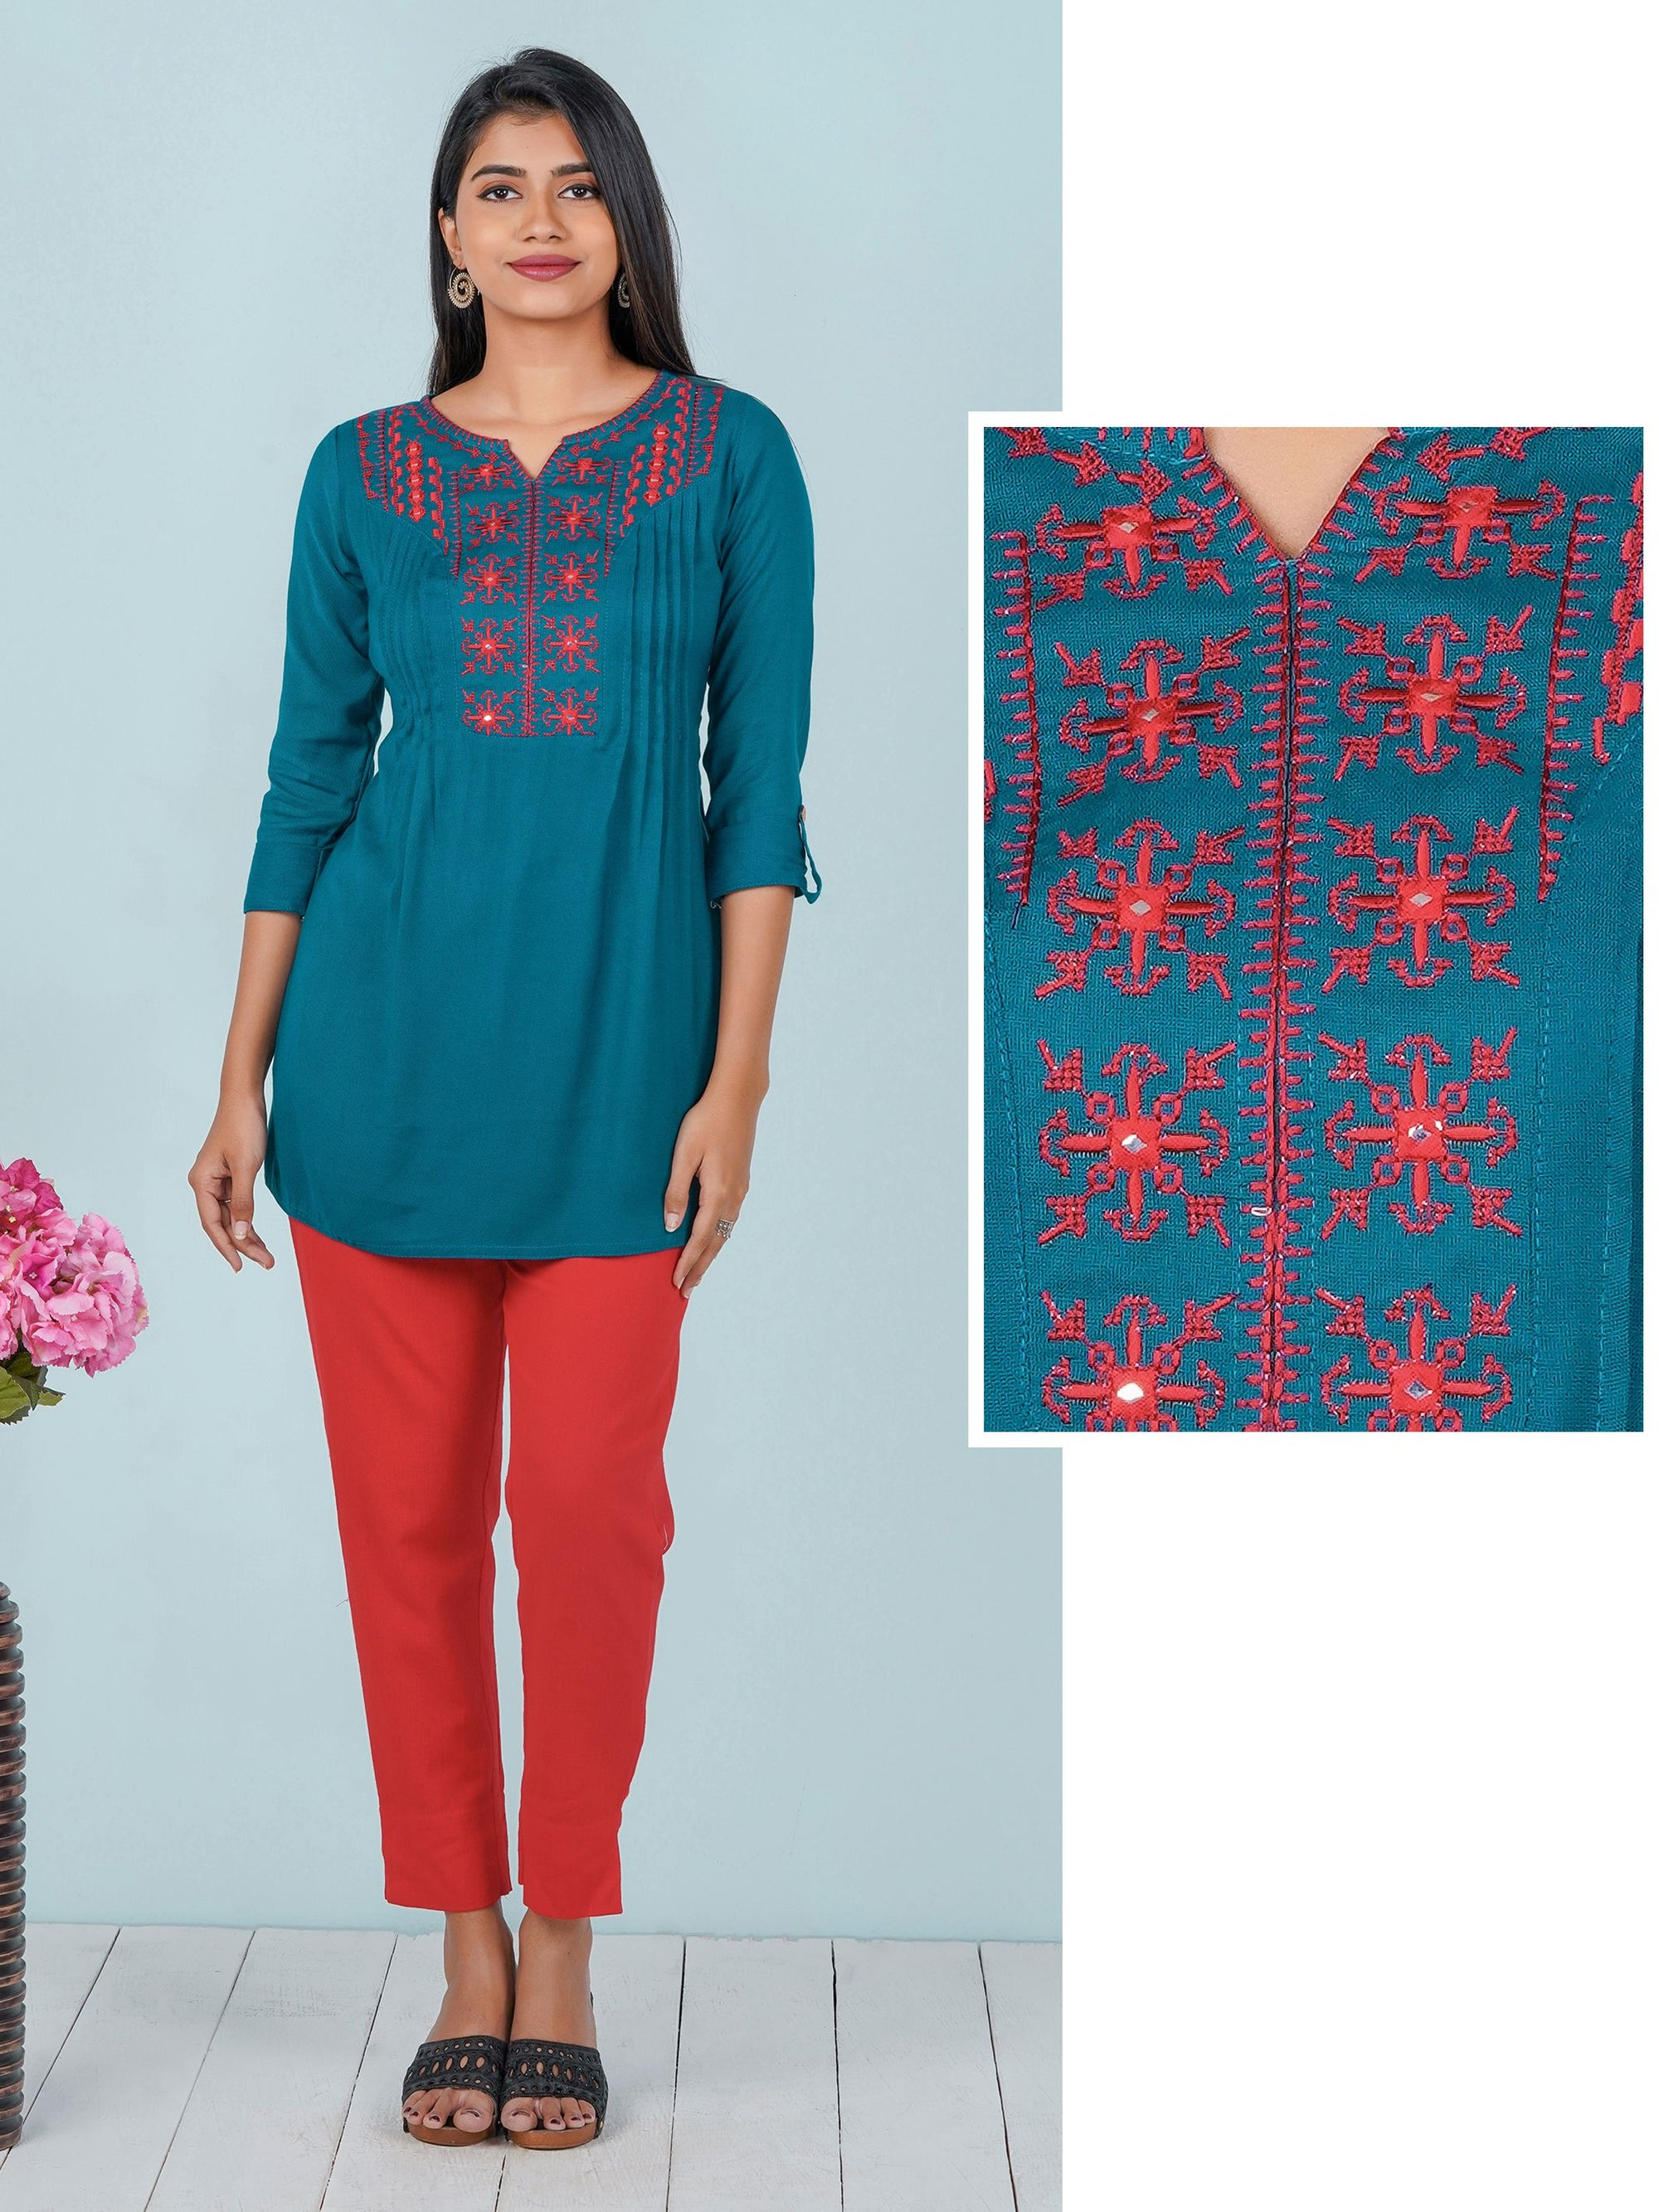 Foil Mirror work & Motif Embroidered Pin Tuck Tunic